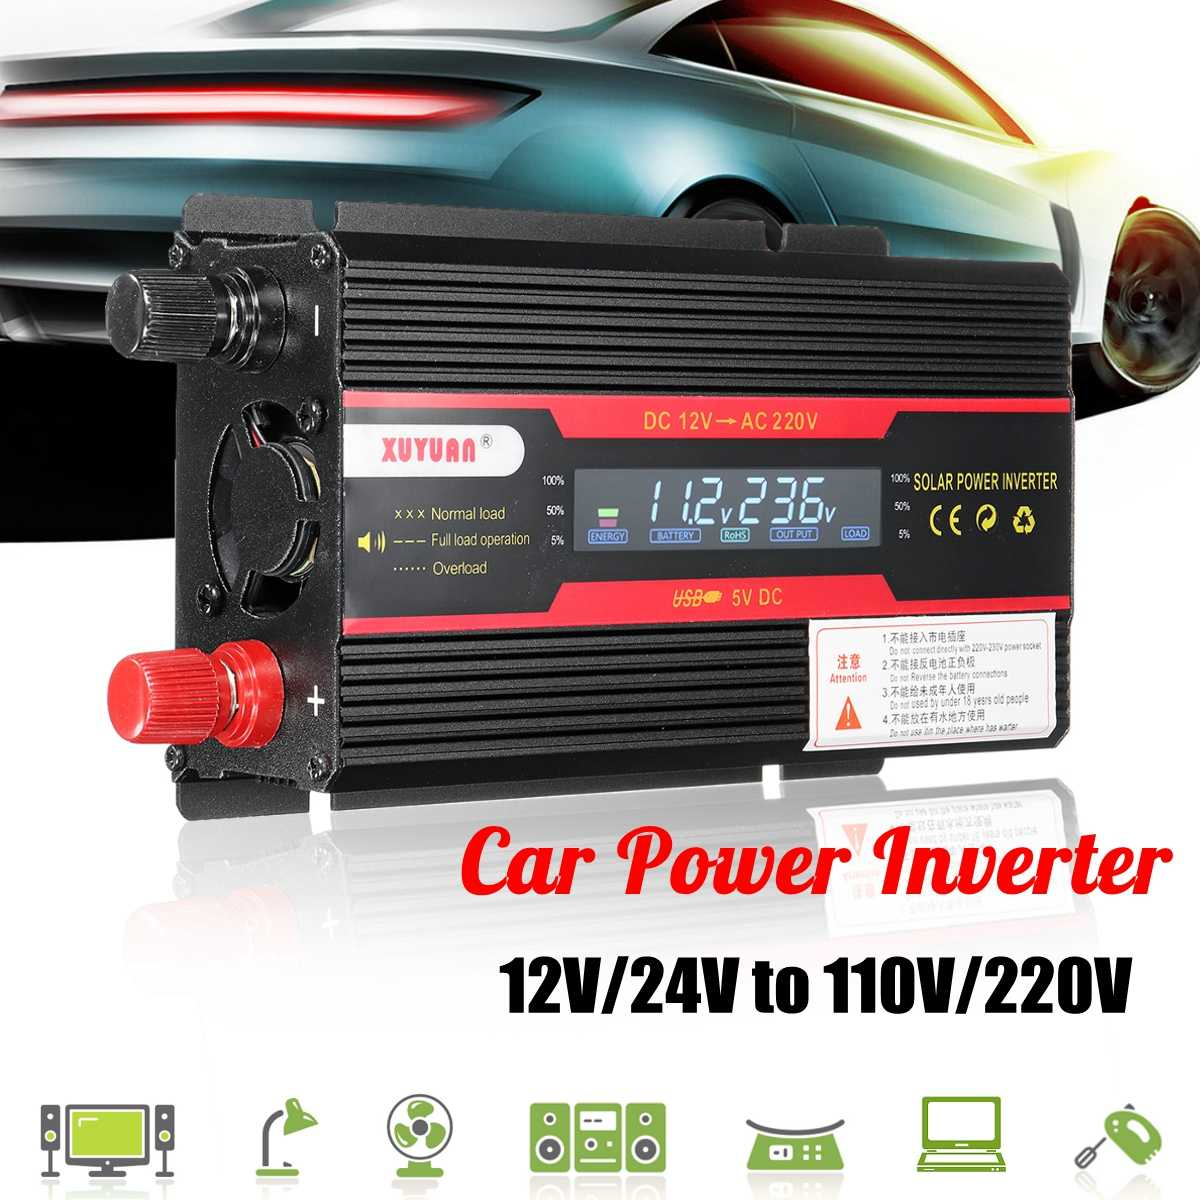 Car <font><b>Inverter</b></font> <font><b>12V</b></font> 220V <font><b>3000W</b></font> Power <font><b>Inverter</b></font> Voltage Convertor Transformer <font><b>12V</b></font>/24V To 110V/220V Inversor + LCD Display image